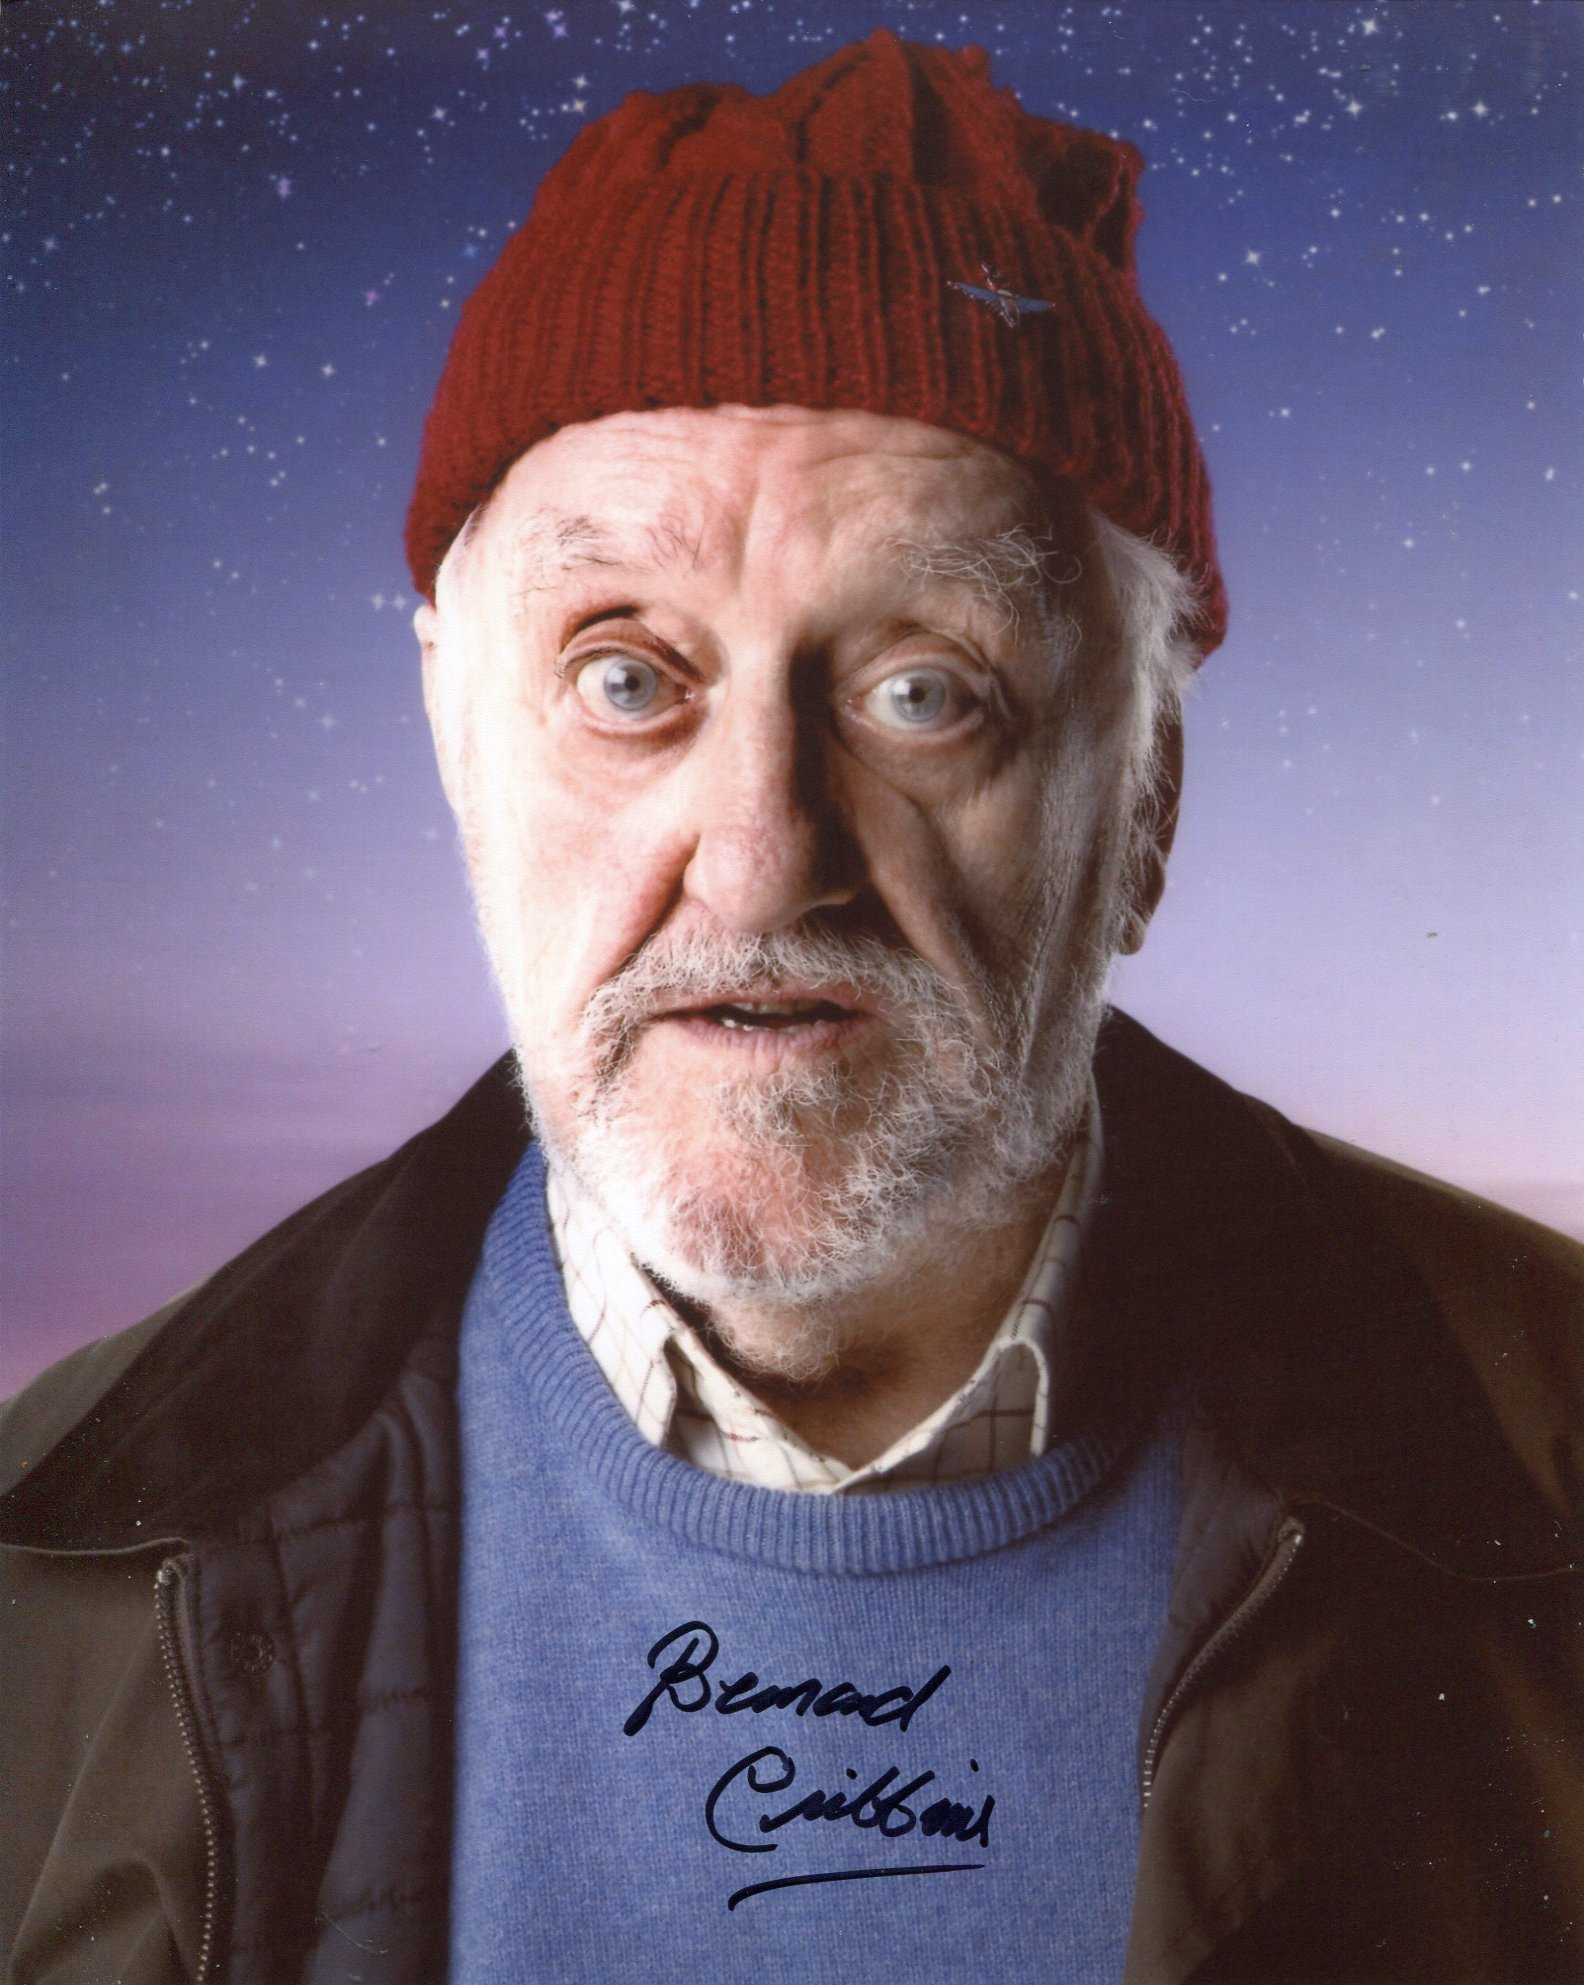 Doctor Who 8x10 photo signed by actor Bernard Cribbins as Wilf Mott. Good condition. All